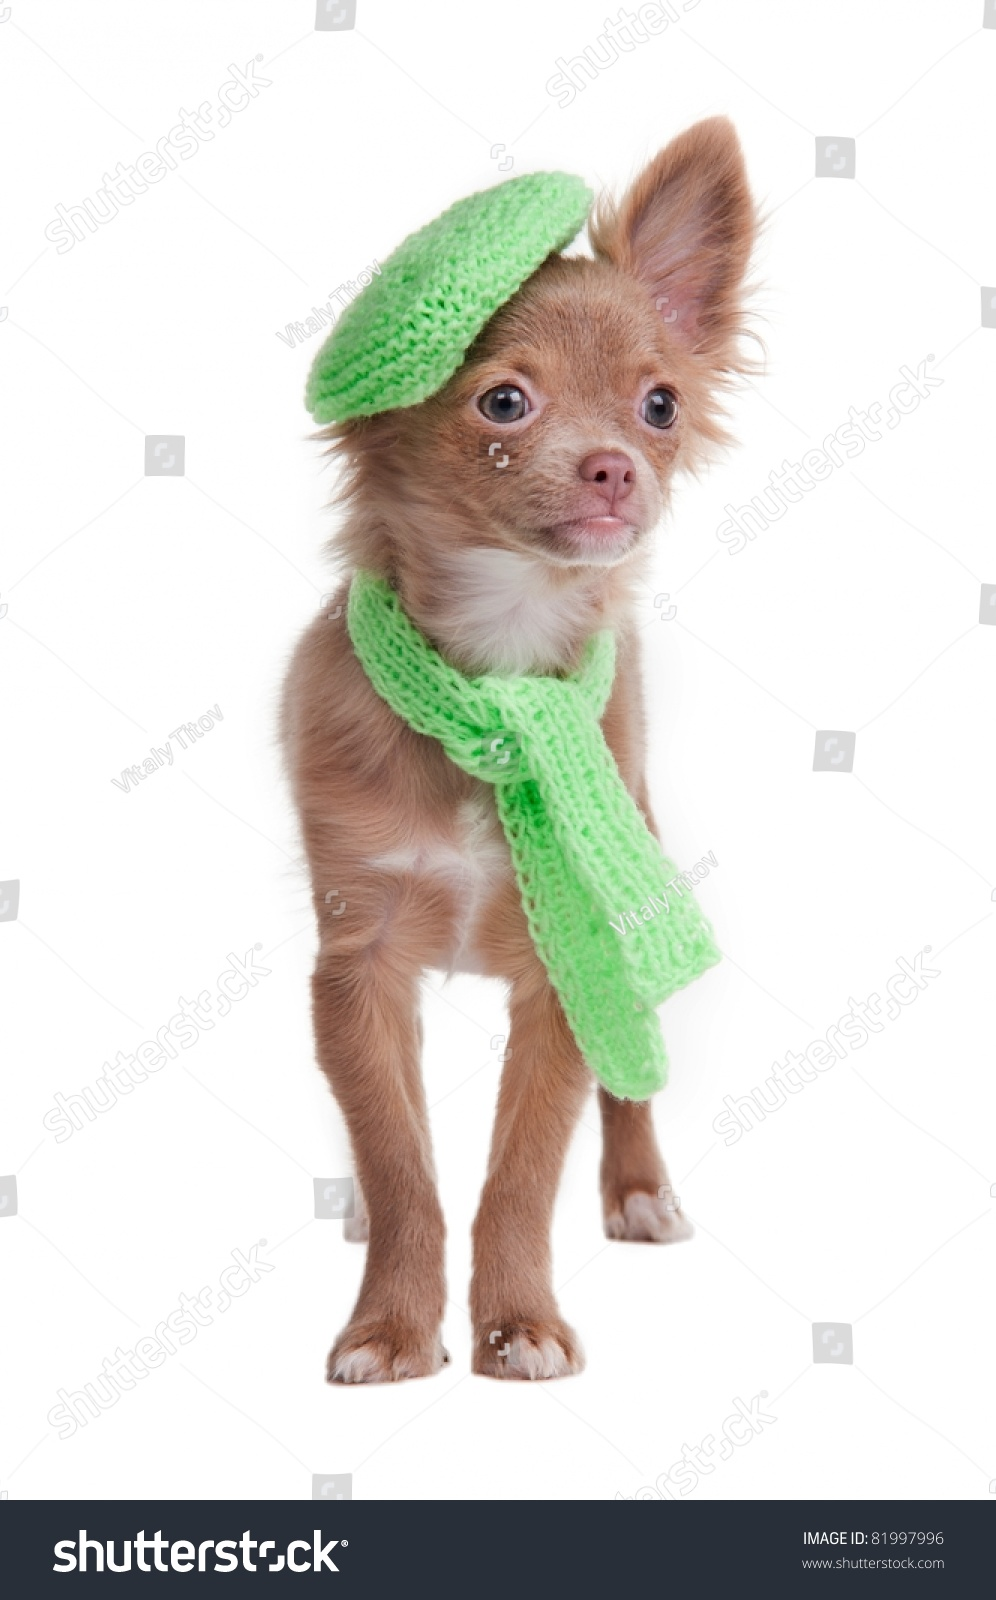 stock-photo-chihuahua-puppy-with-green-beret-and-scarf-isolated-on-white-background-81997996.jpg